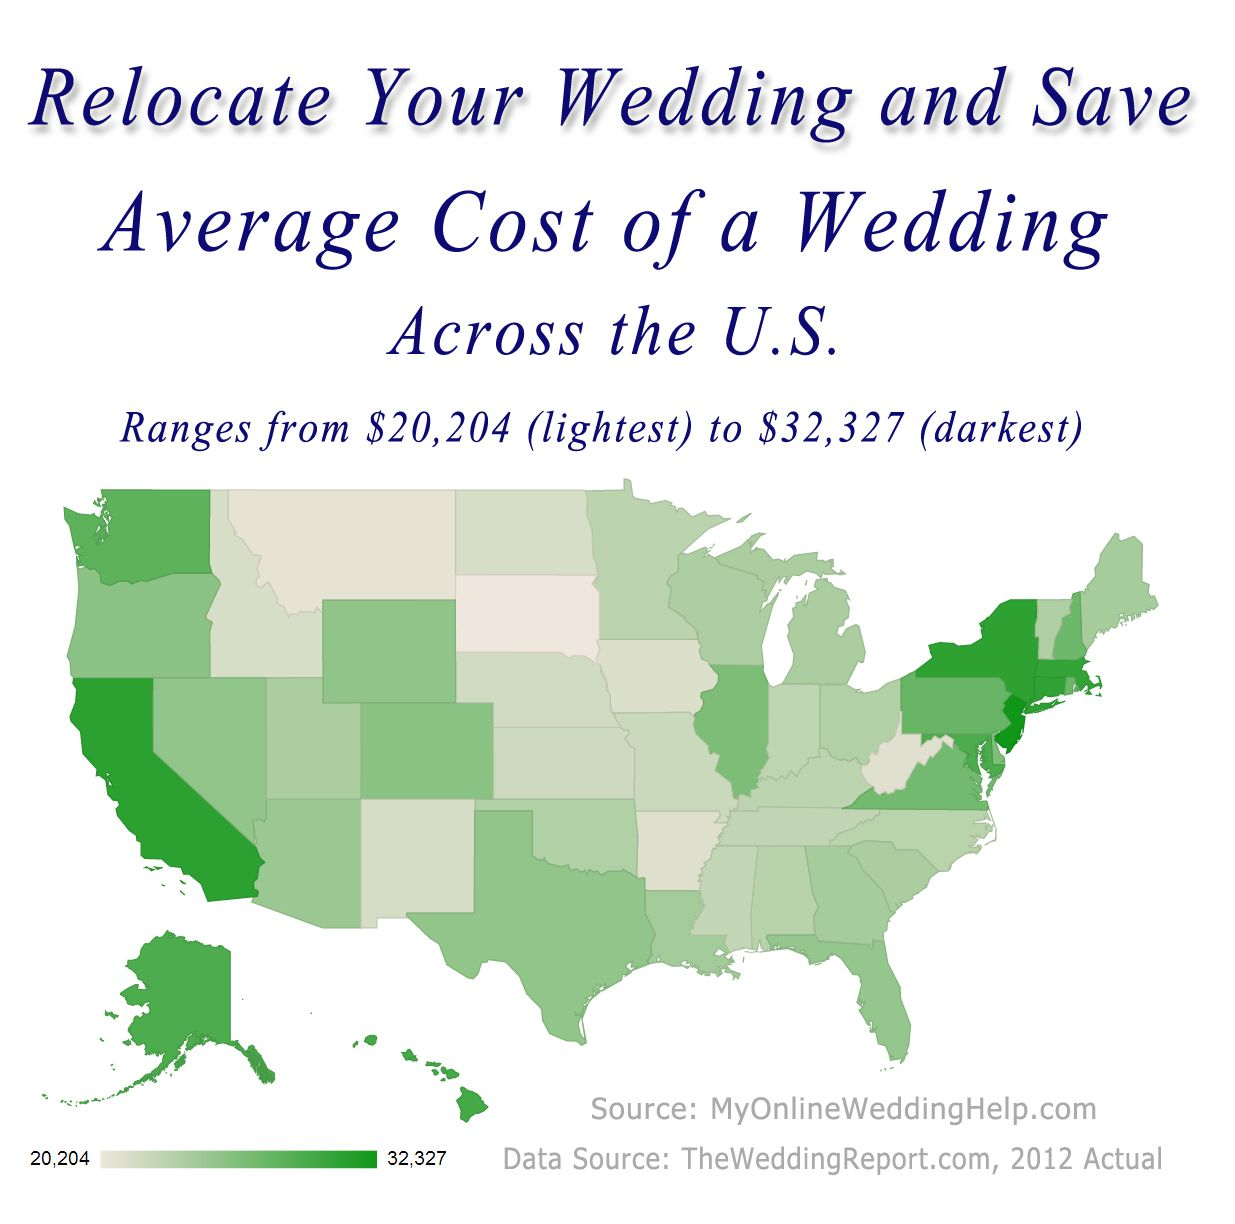 Relocate Your Wedding and Save | Pinterest | Wedding, Weddings and ...